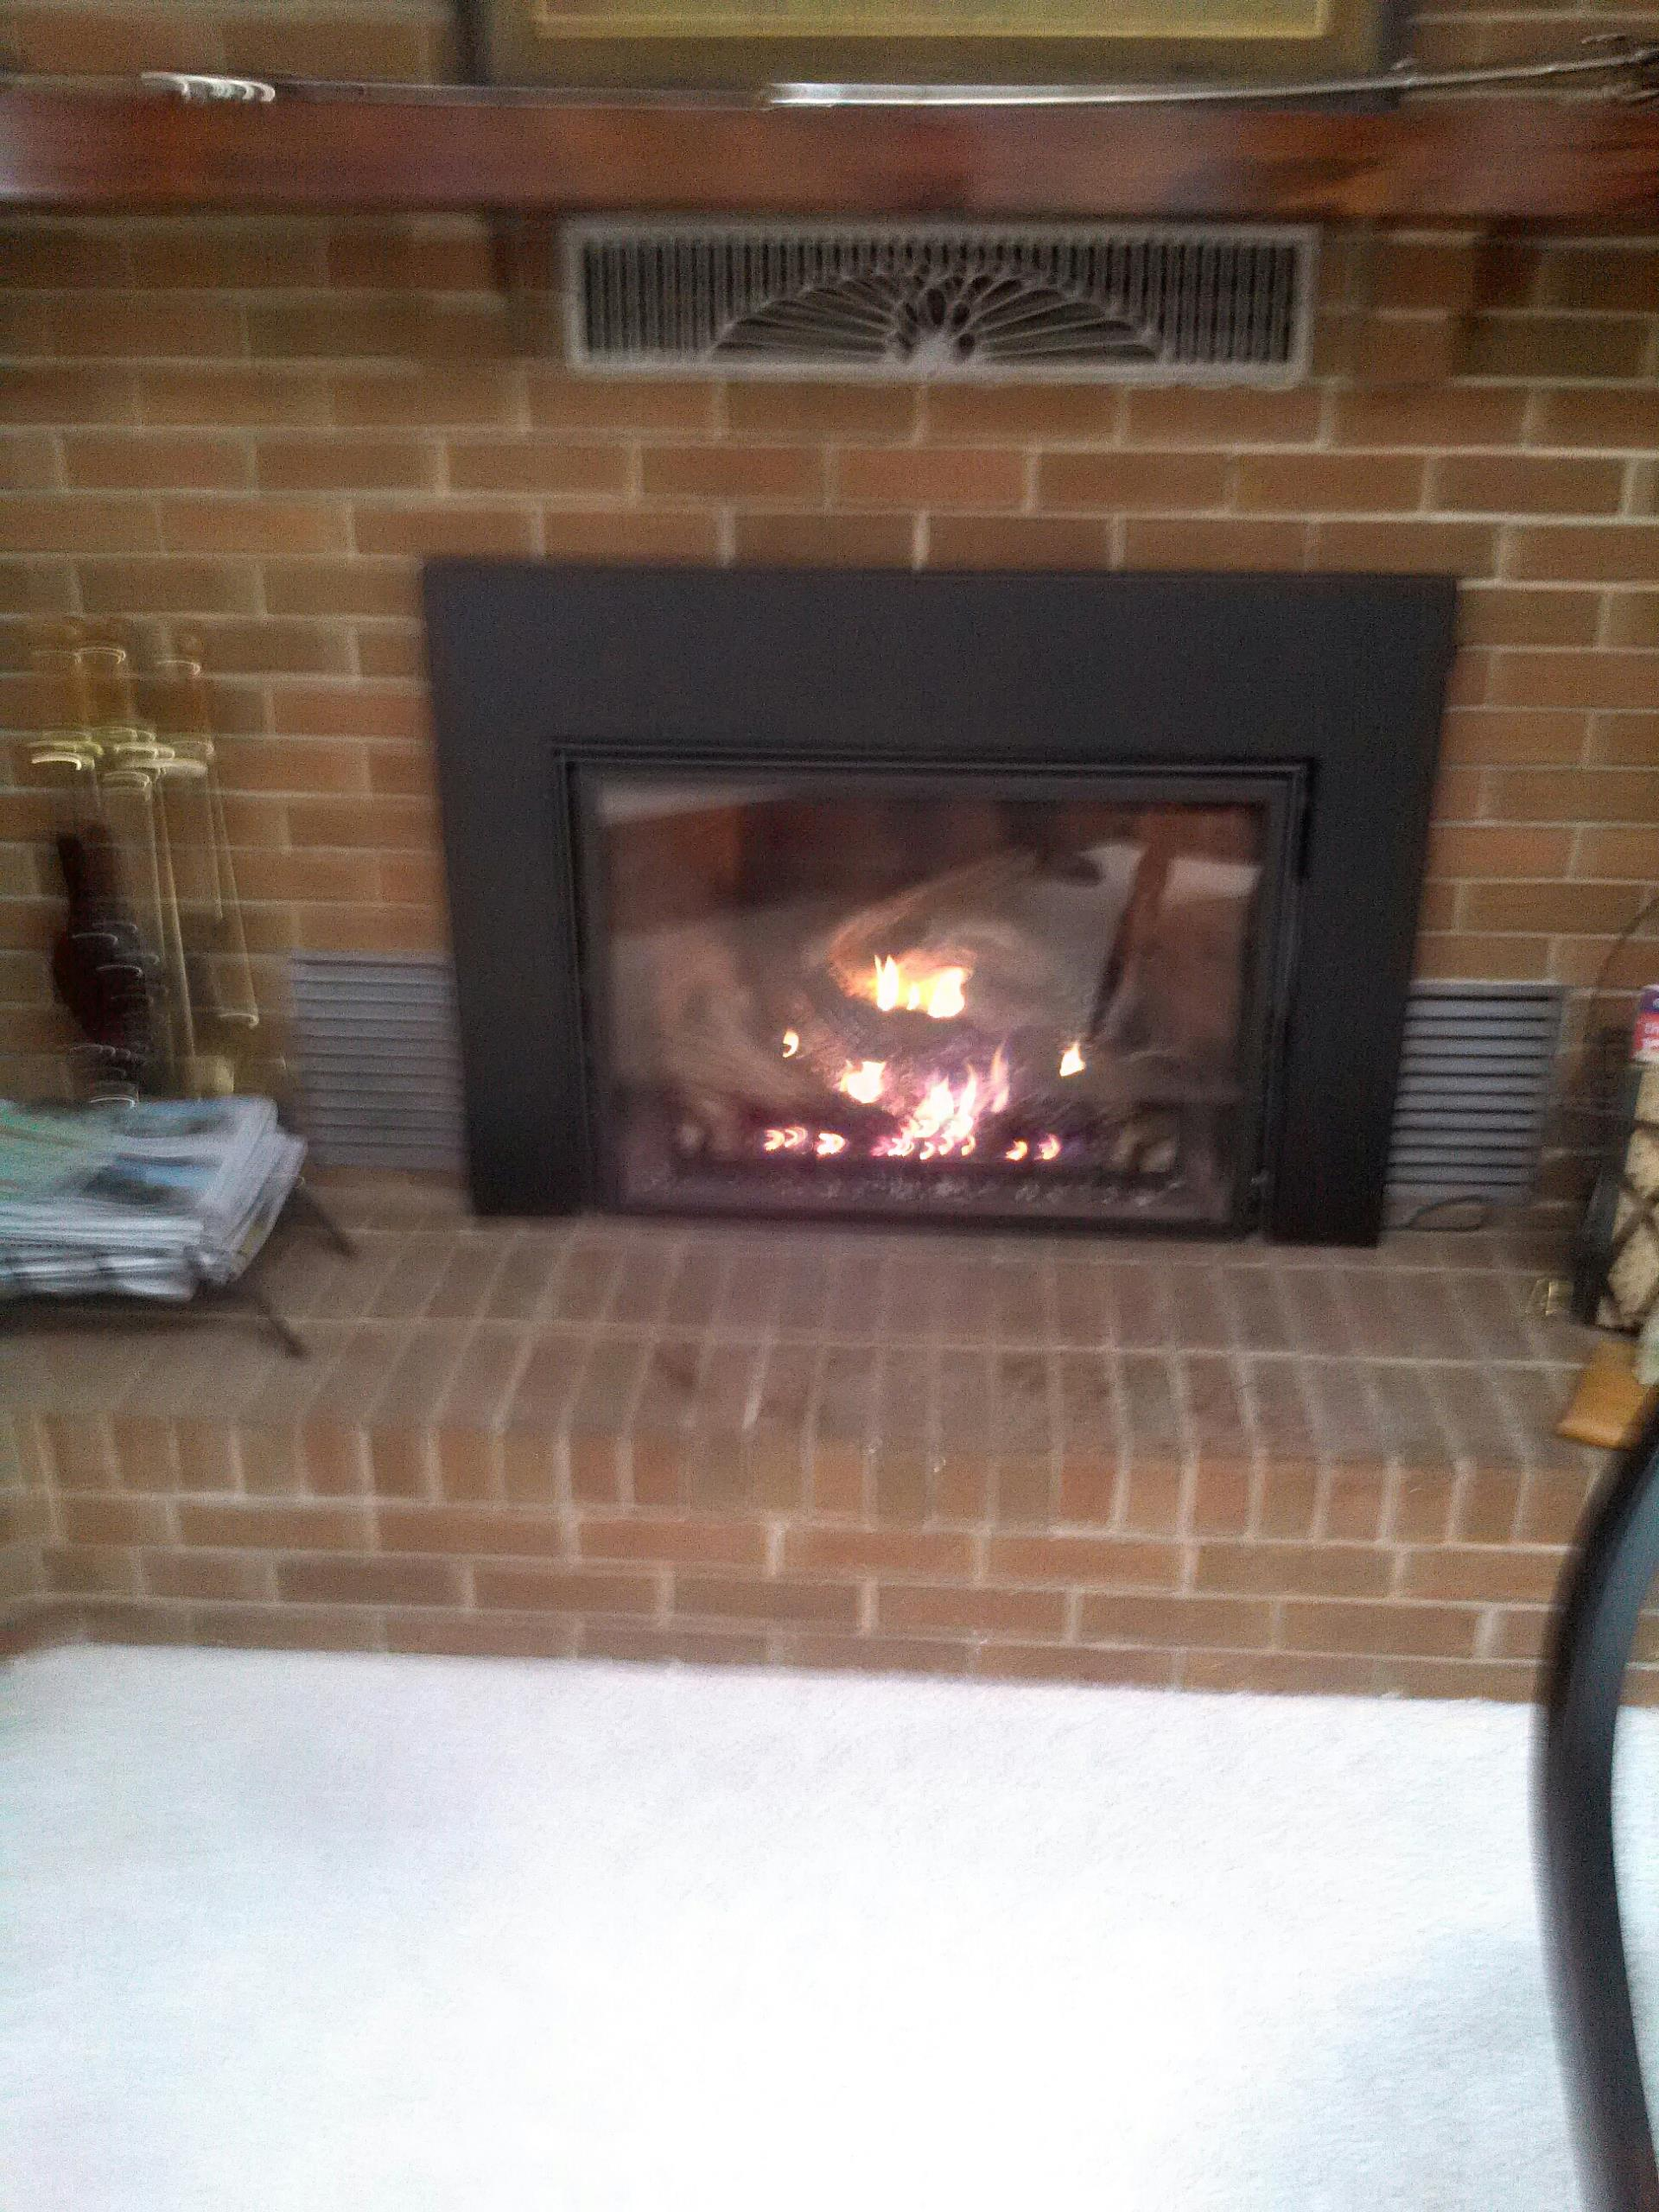 Gambrills, MD - Mendota gas fire place insert & gas log set installation repair service in Gambrills Maryland 21054